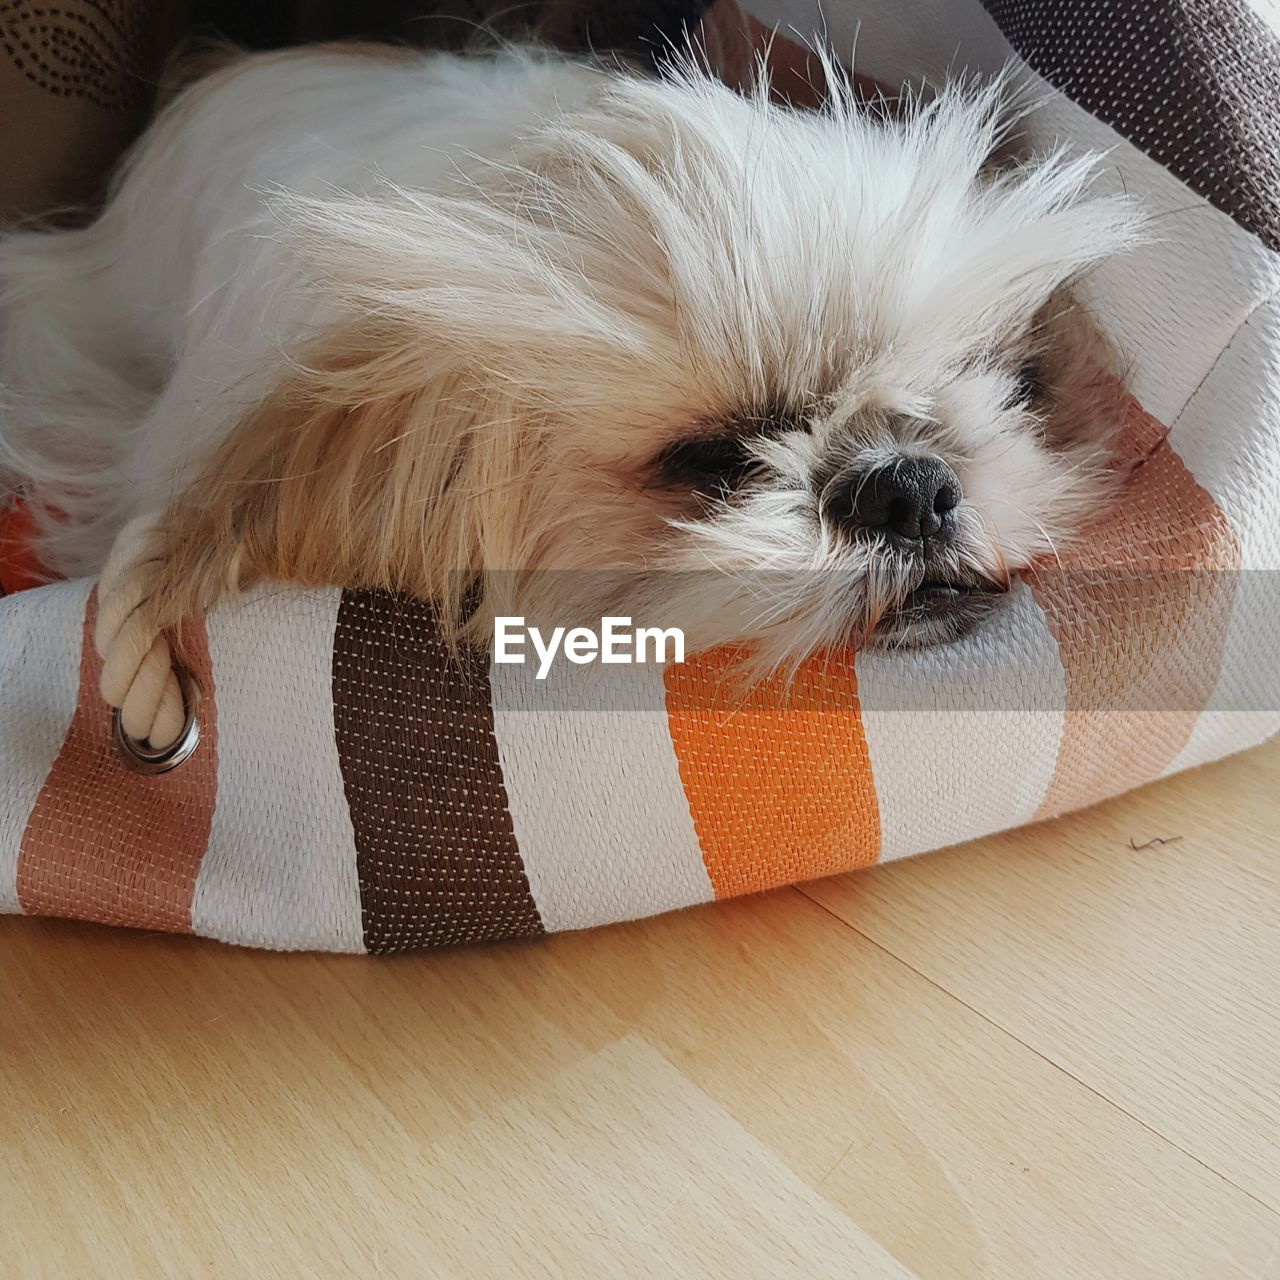 pets, dog, one animal, animal, puppy, mammal, domestic animals, sleeping, animal themes, young animal, indoors, no people, close-up, vet, day